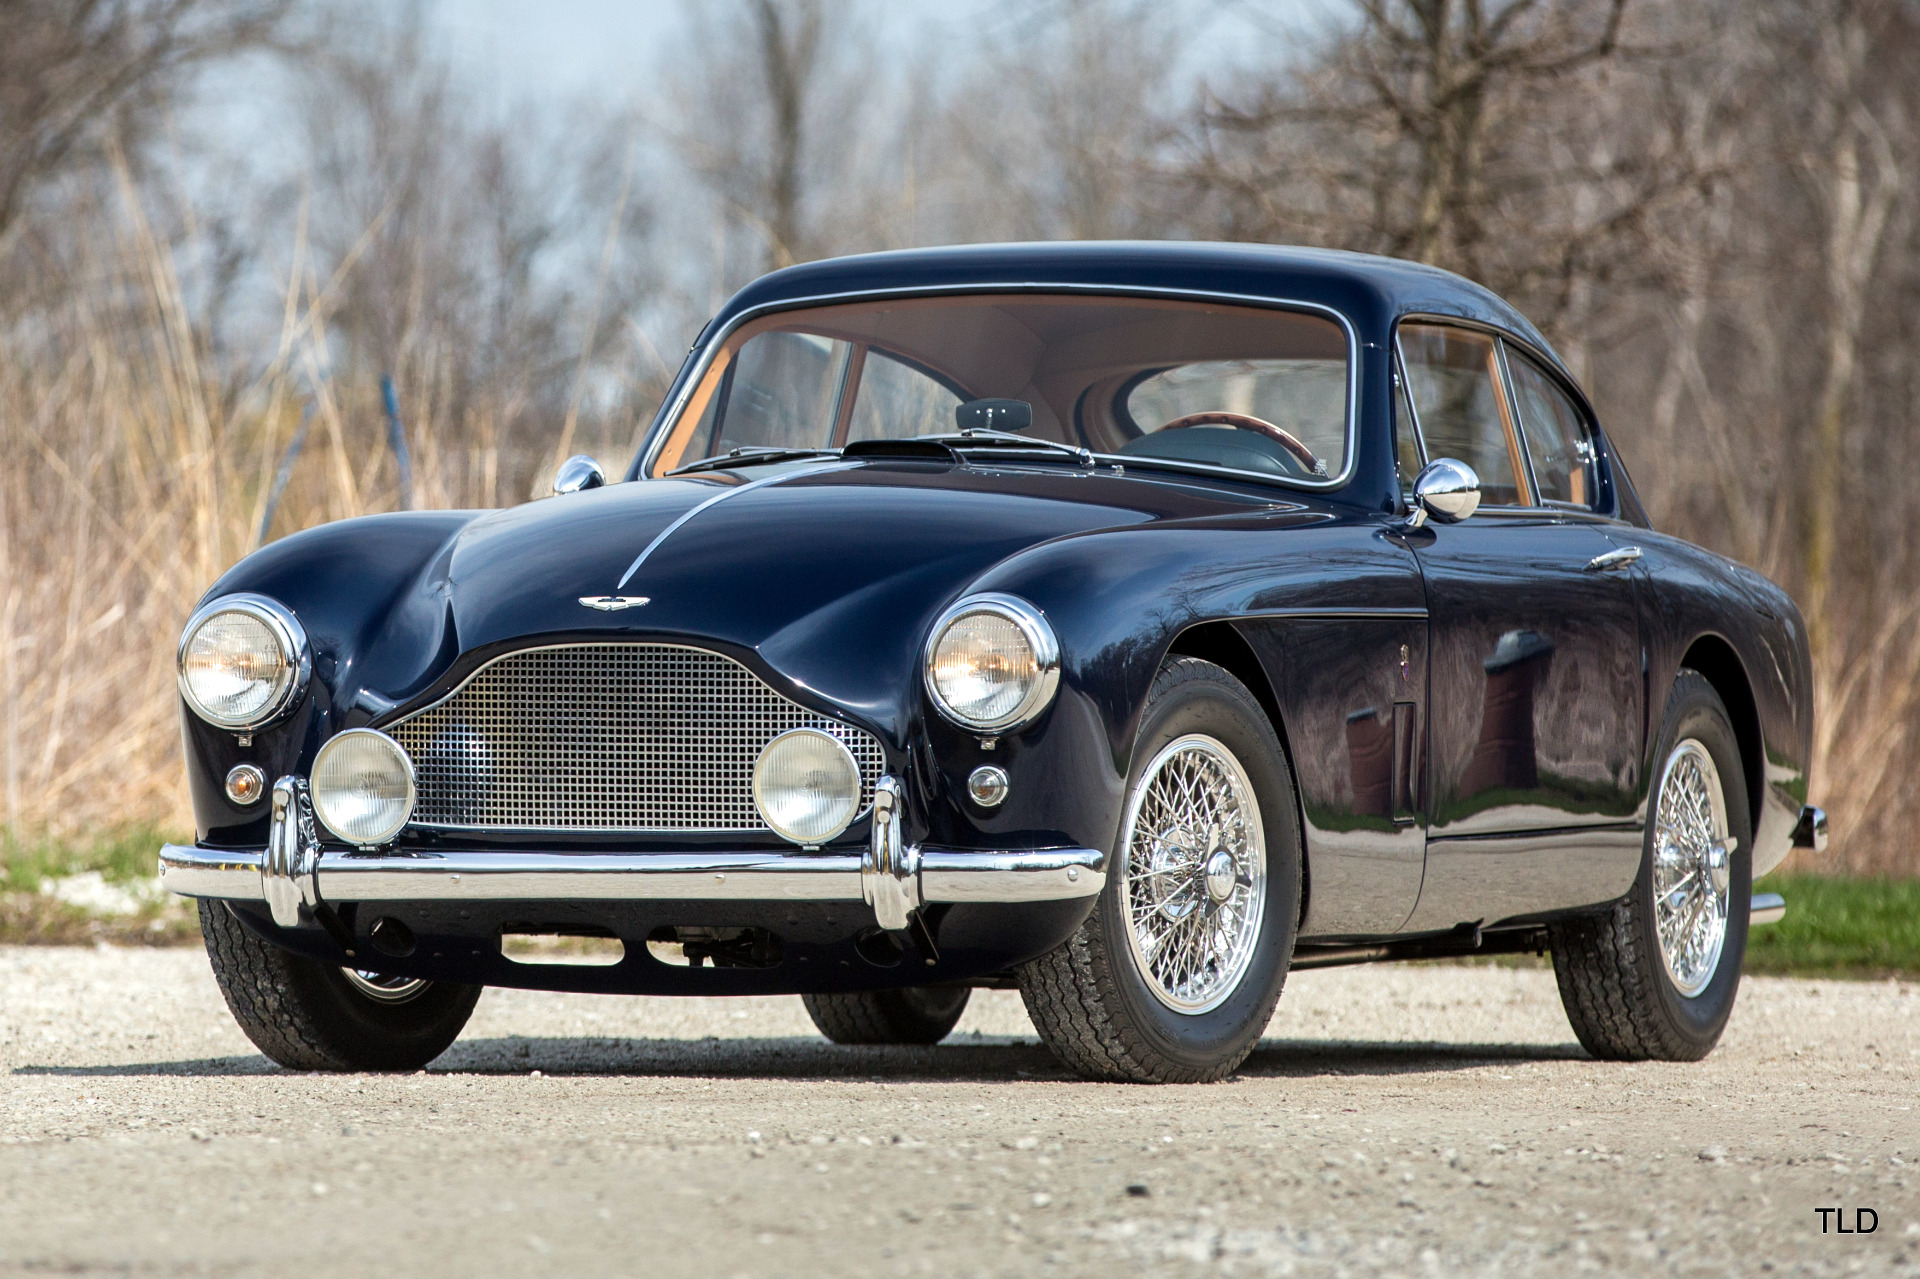 Aston Martin DB Mark III - Aston martin db2